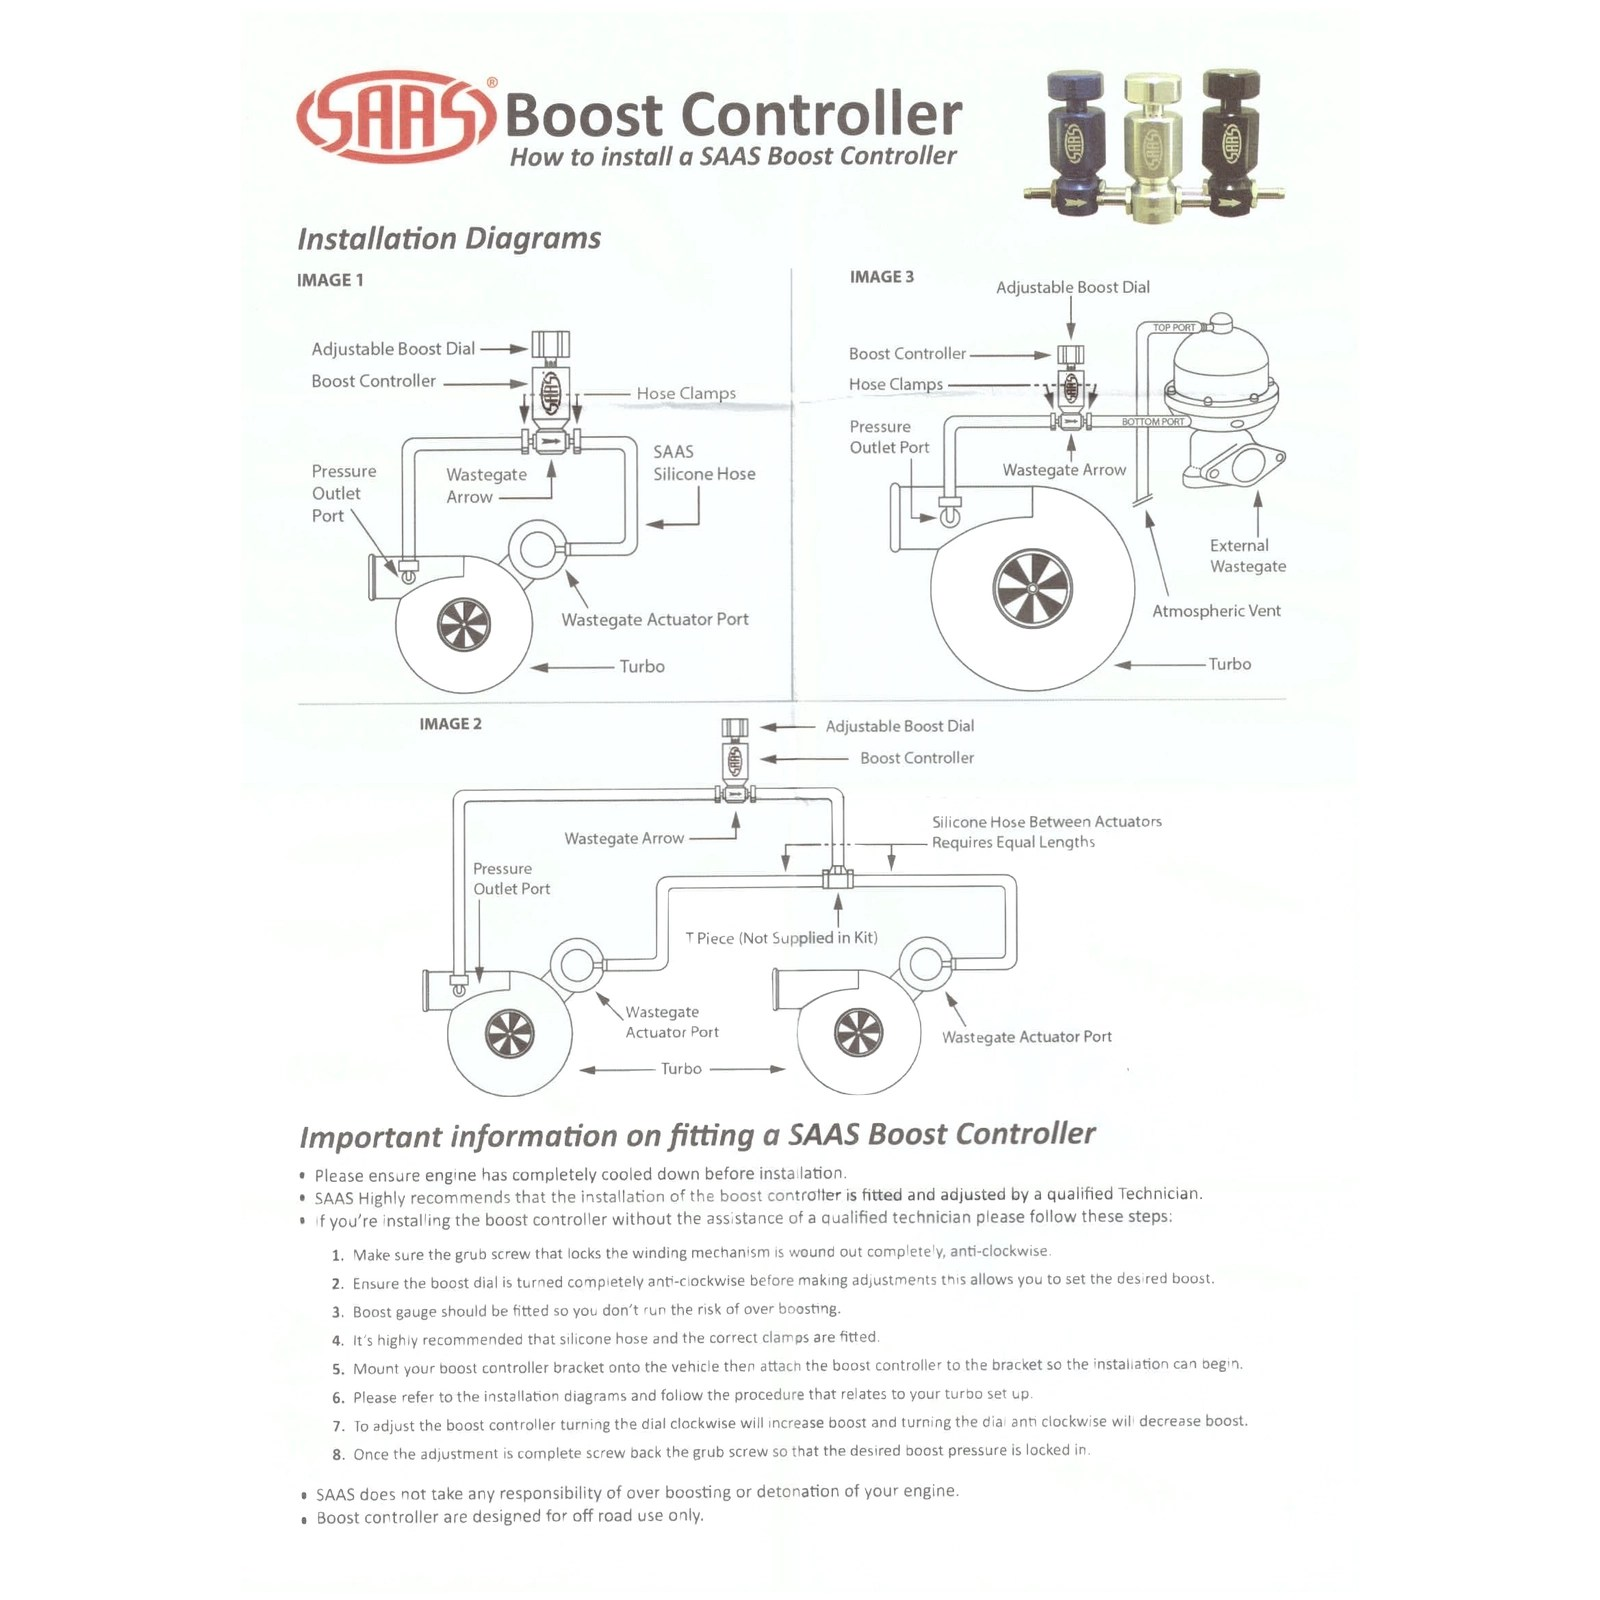 bf falcon audio wiring diagram for boat ignition switch saas black billet aluminiumturbo adjustable boost